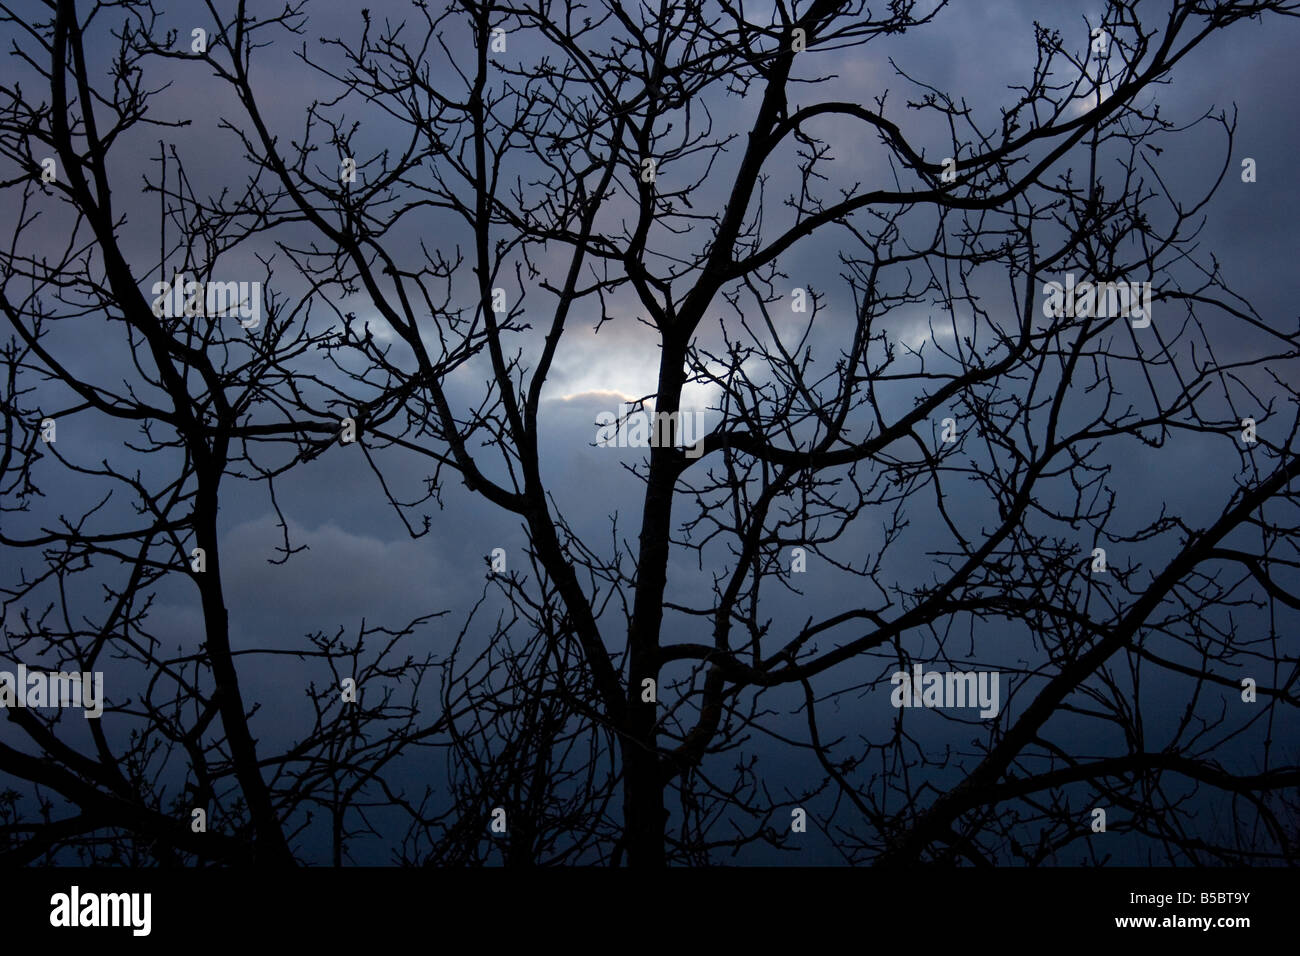 Silhouette of a leafless tree against a dark sky, winter, Italy. - Stock Image